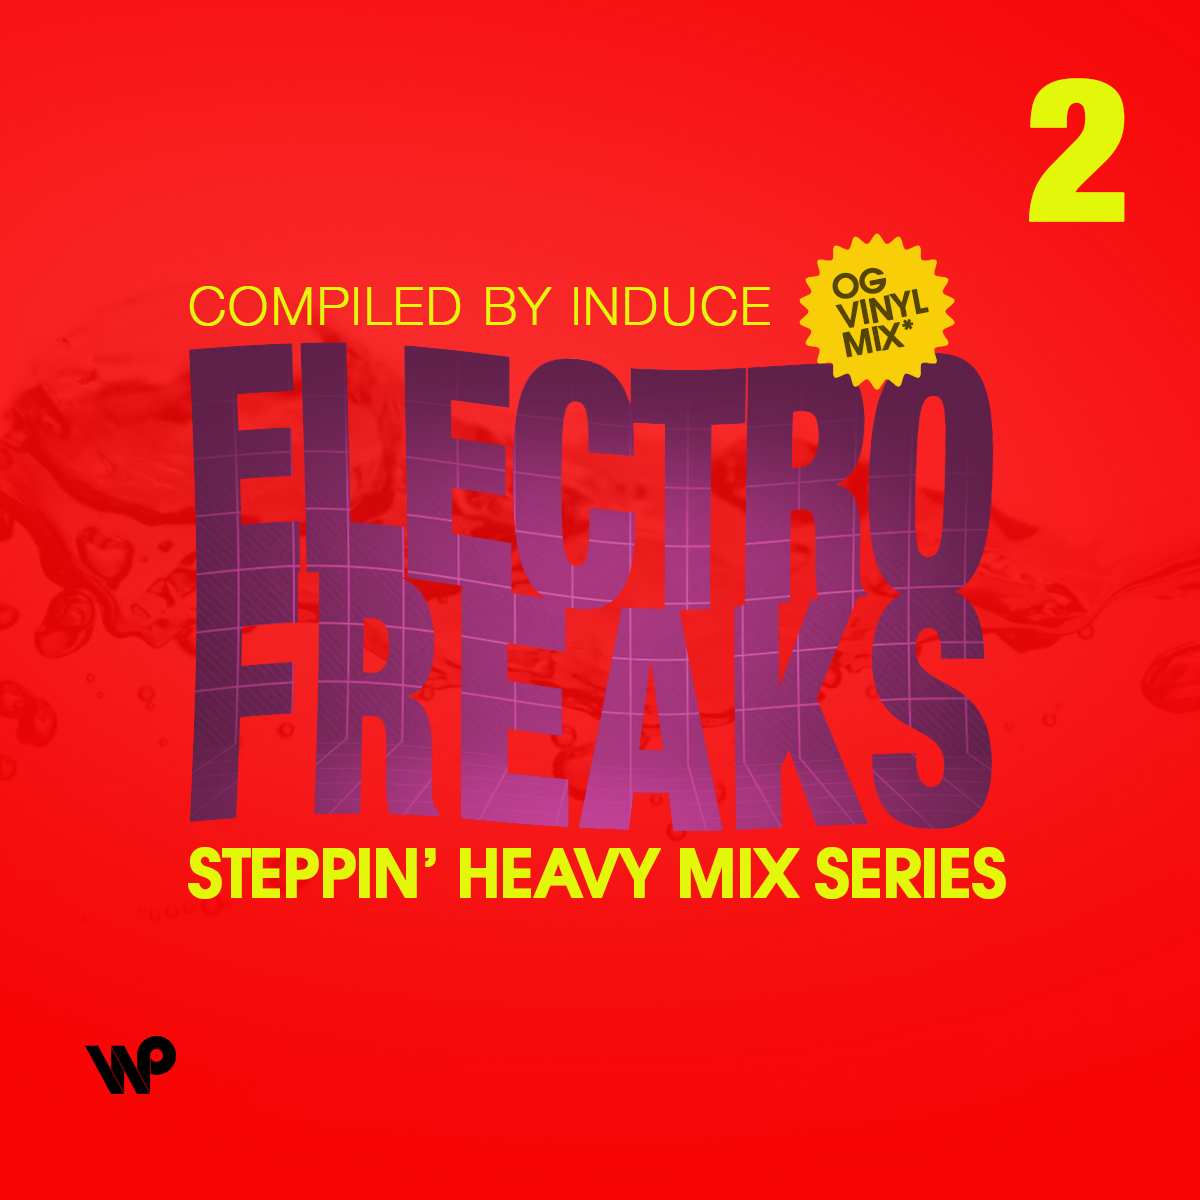 Steppin' Heavy Mix Series #2: Electro Freaks